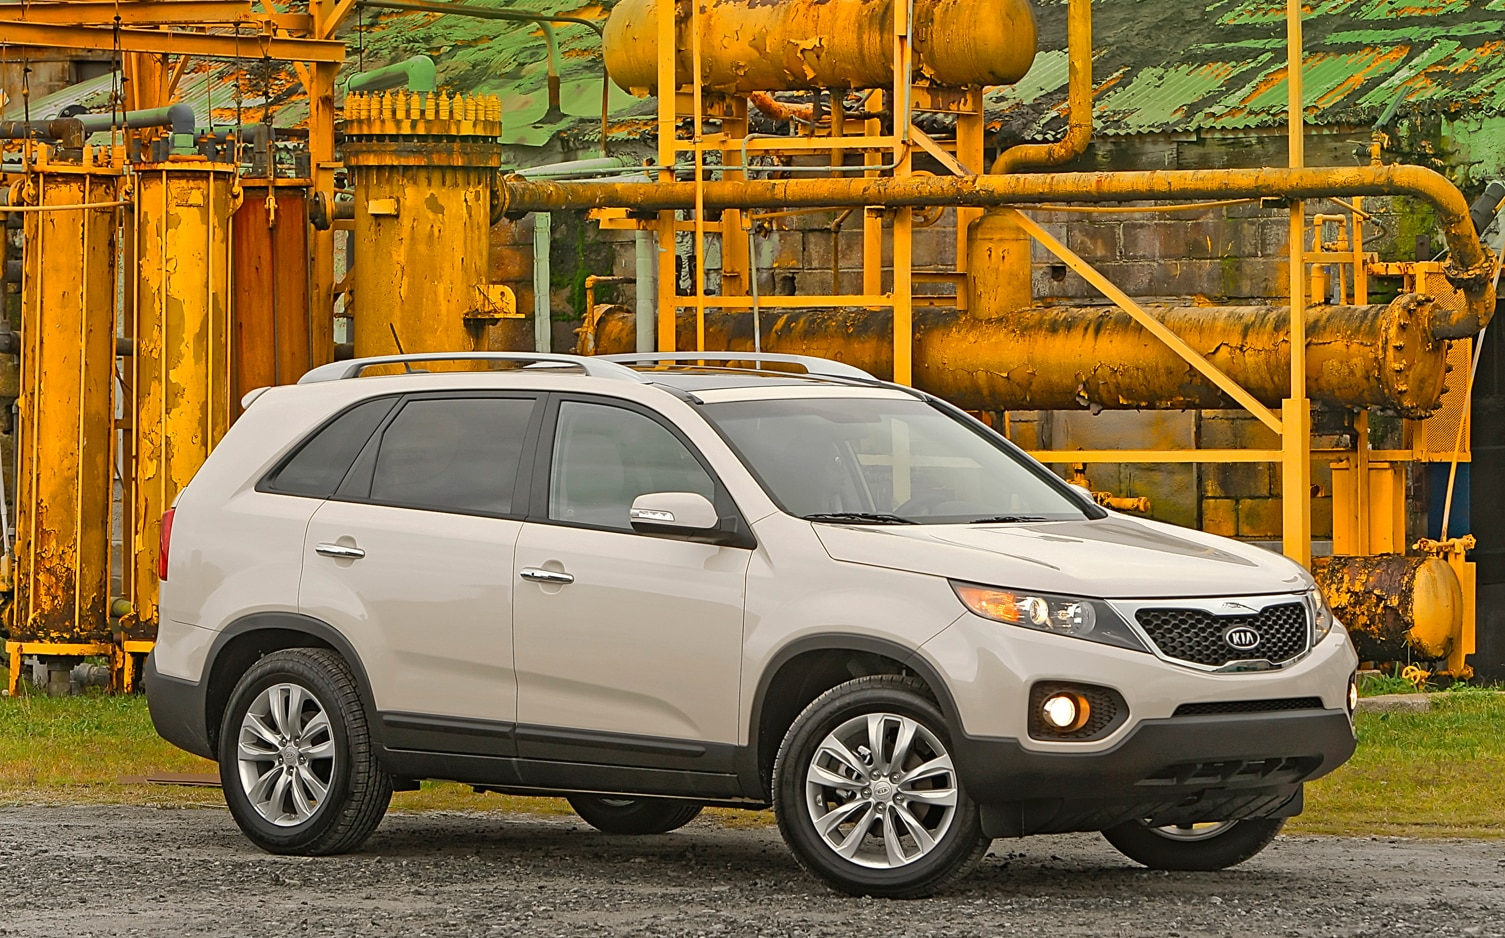 2012 Kia Sorento Front Right Side View